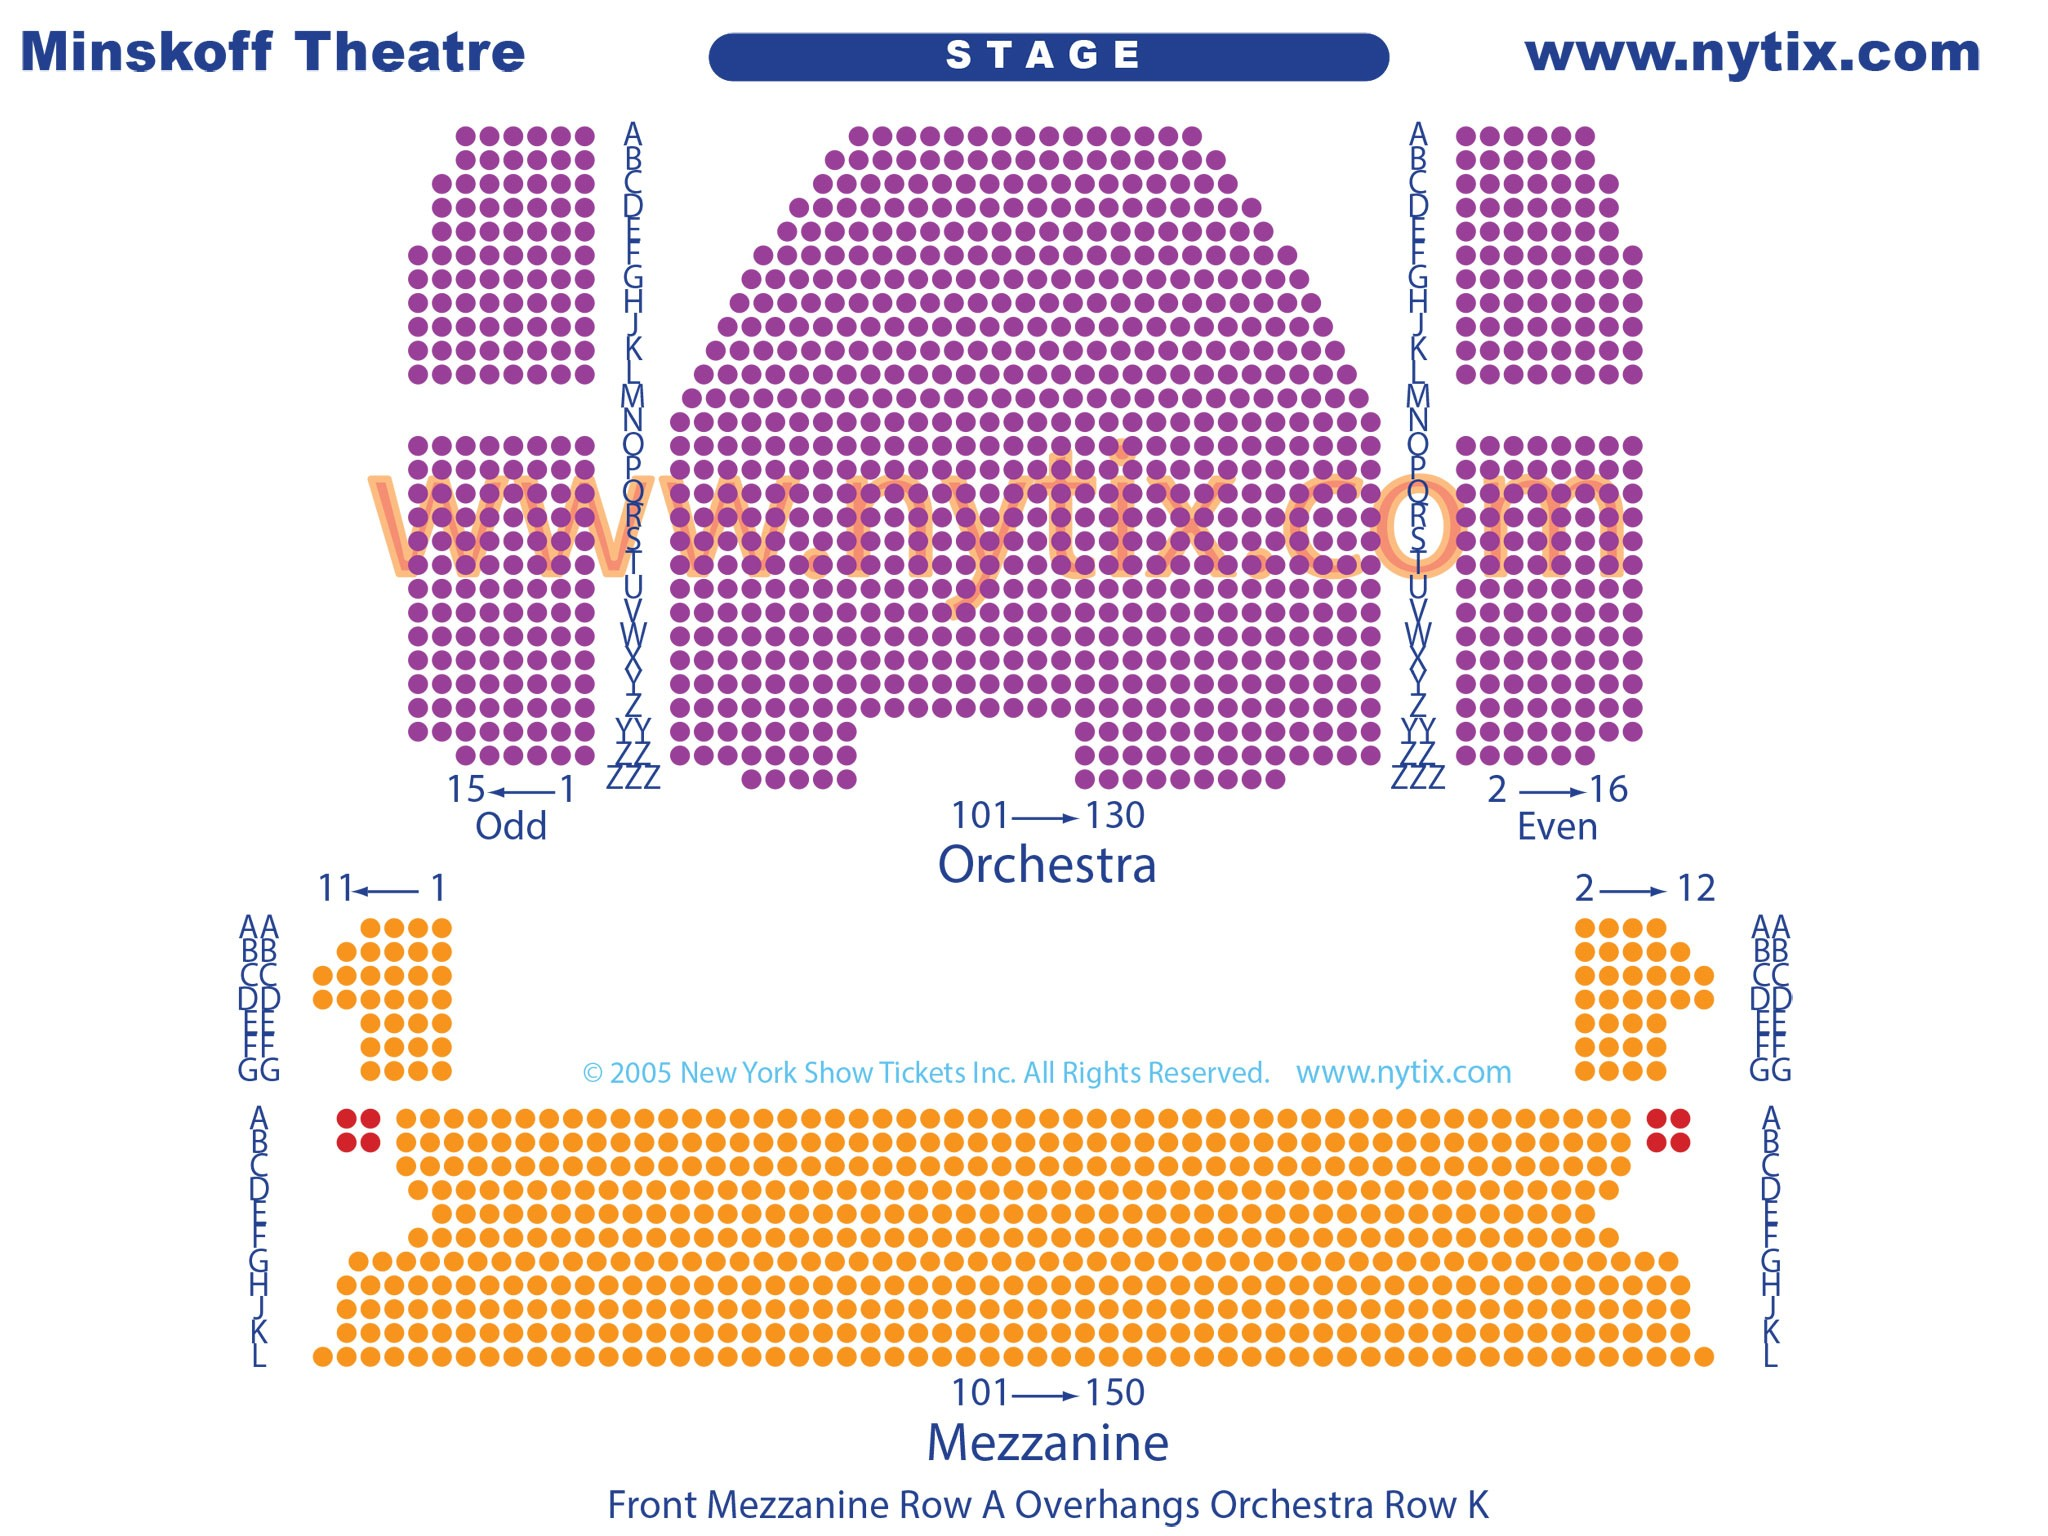 Minskoff Theatre Seating Chart